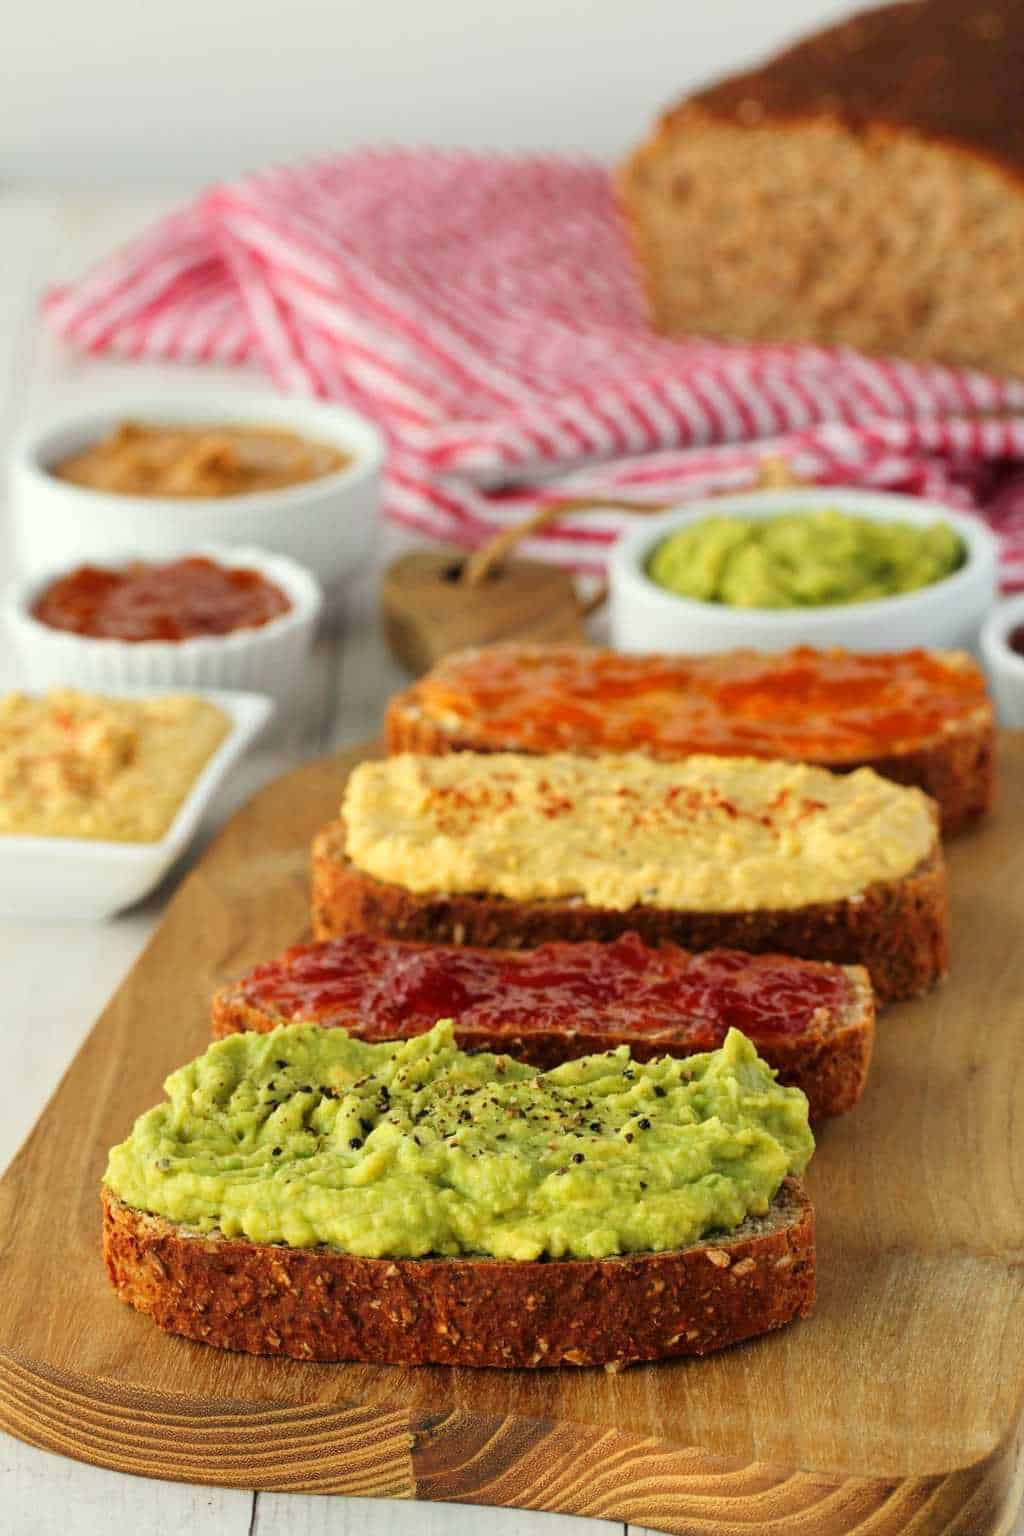 Wholewheat Bread slices topped with avocado, hummus and jams on a wooden board.